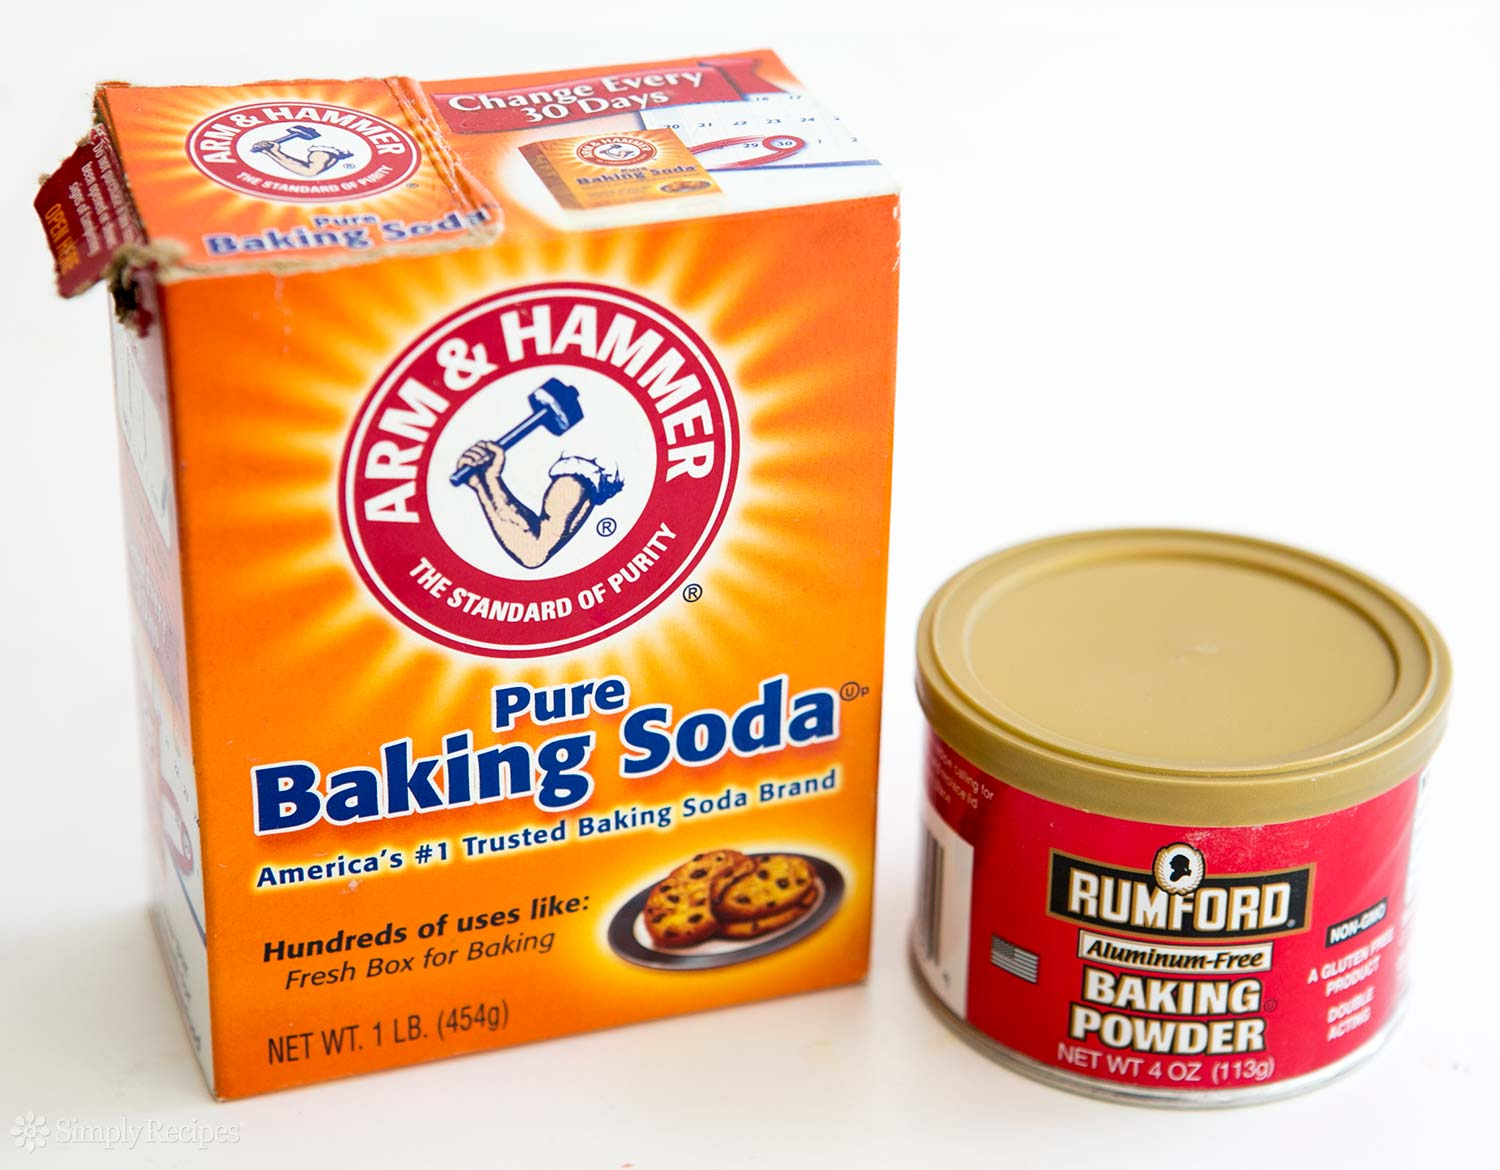 10 New Uses for Baking Soda